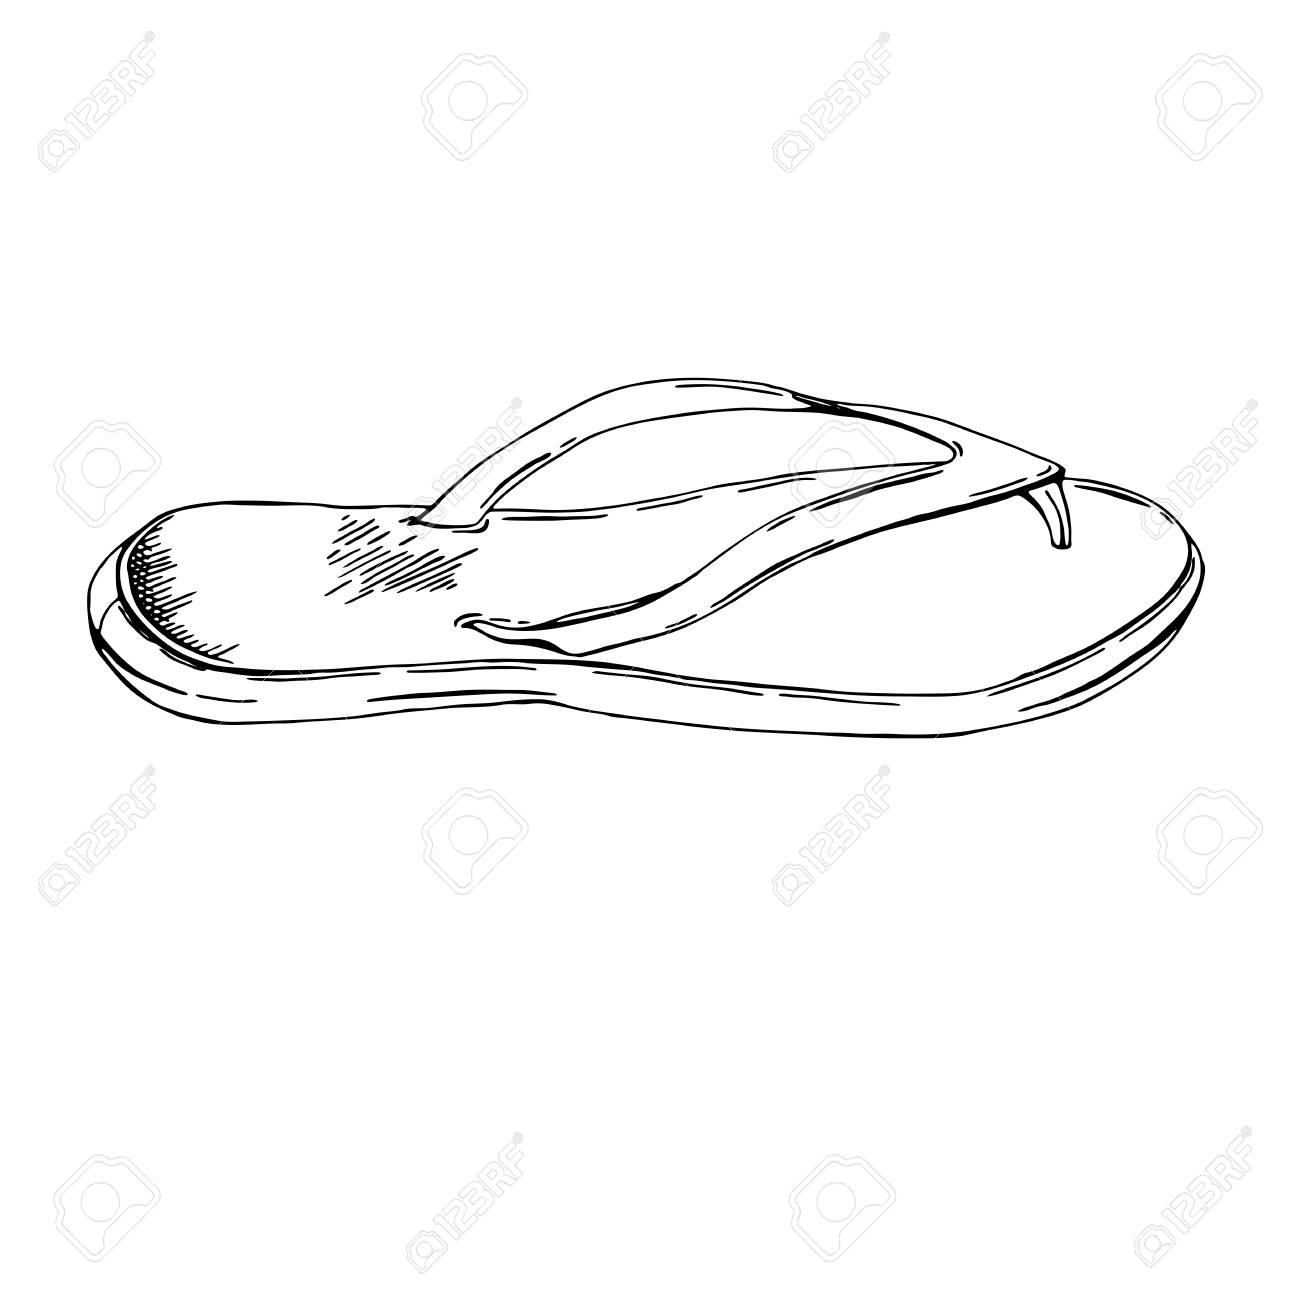 d0c007fc2c0dc0 Hand drawn sketch illustration. summer vacations background. Flip-flops  isolated on isolated background. Beach slippers. Vintage